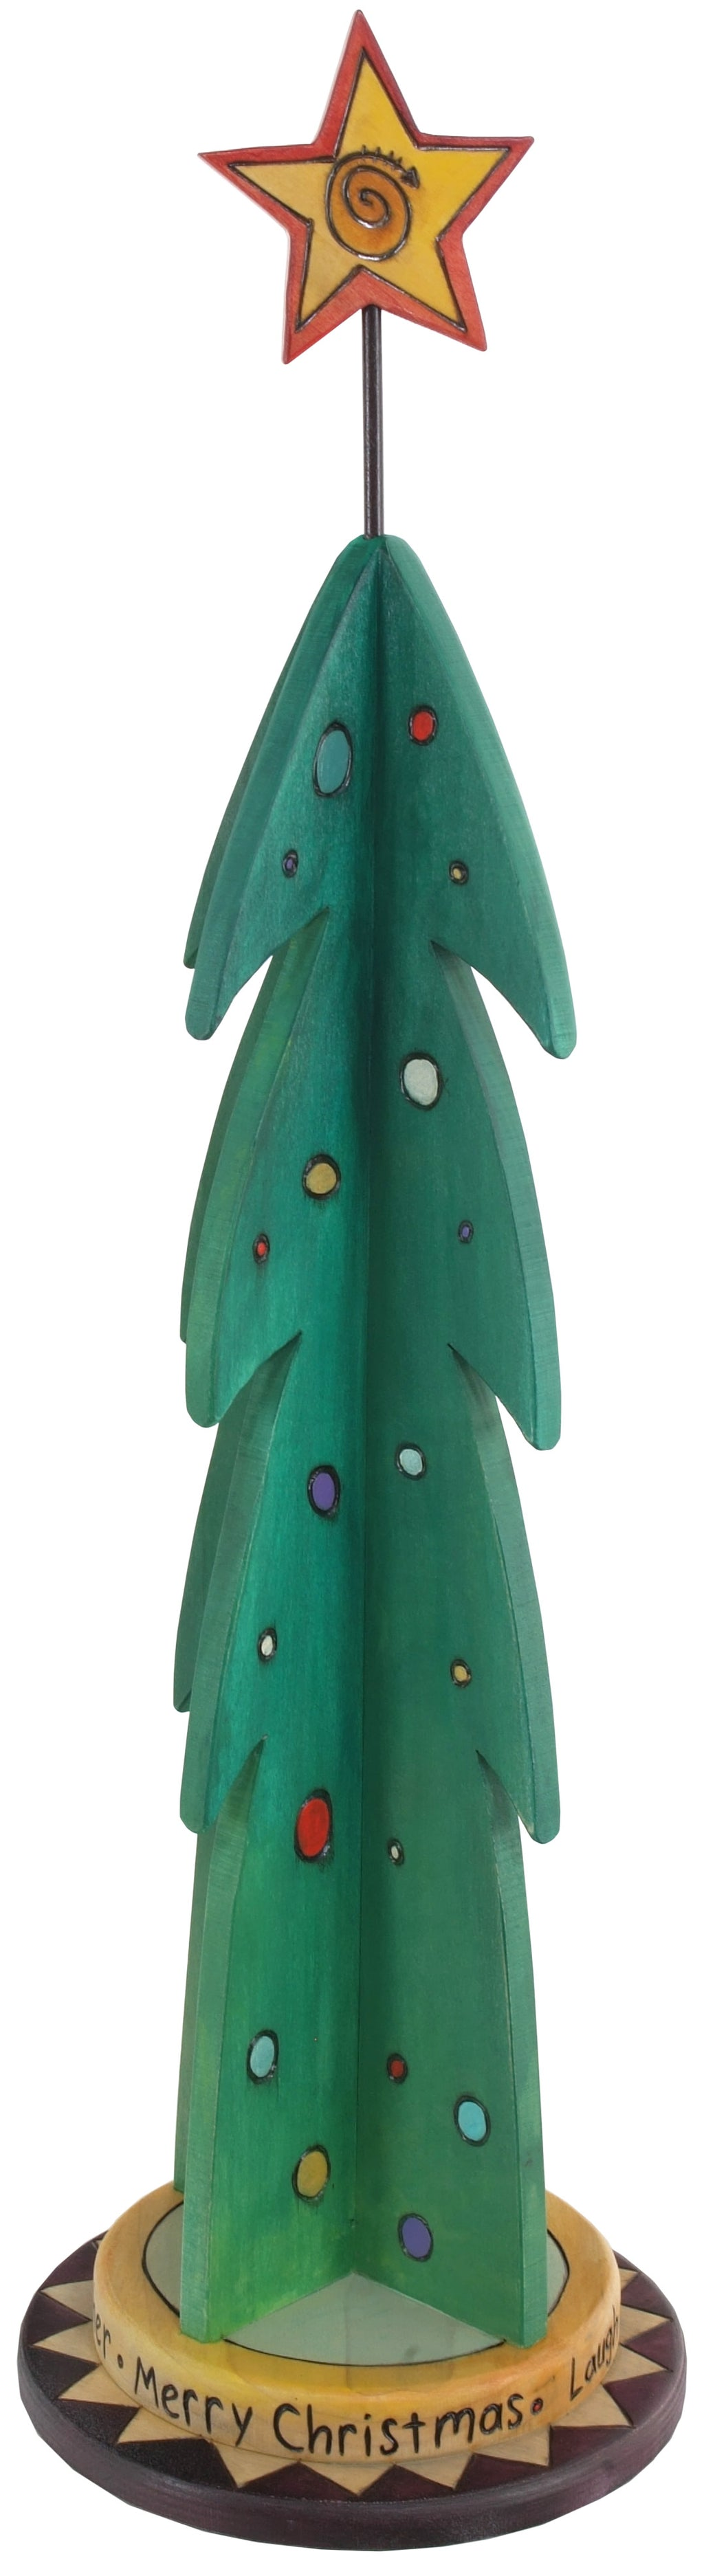 Medium Christmas Tree Sculpture